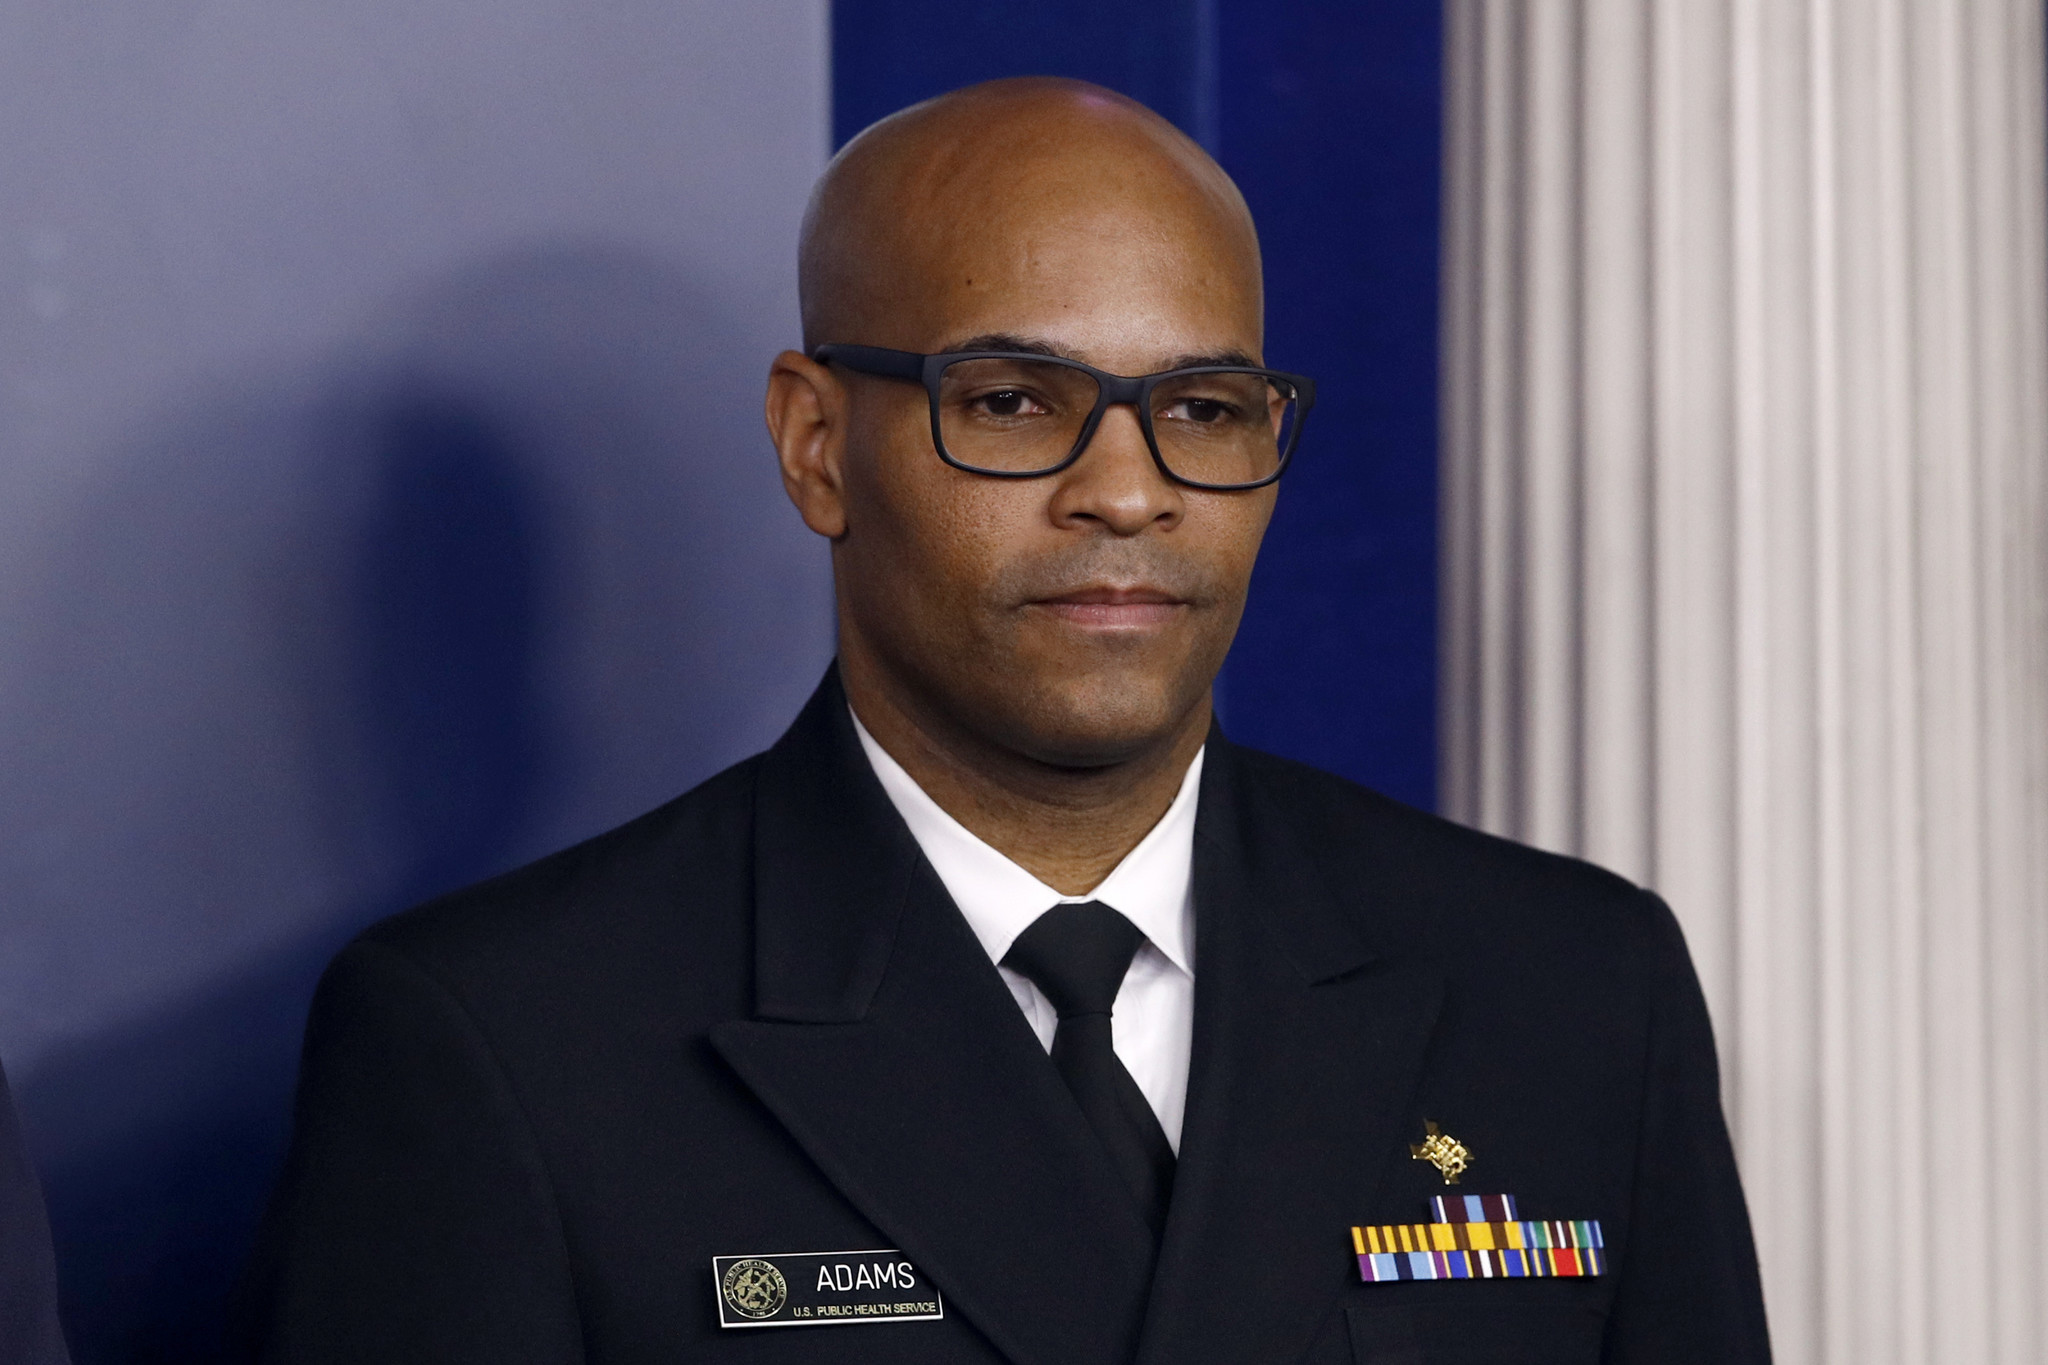 This week will be like a 'Pearl Harbor' and '9/11' moment, Surgeon General says